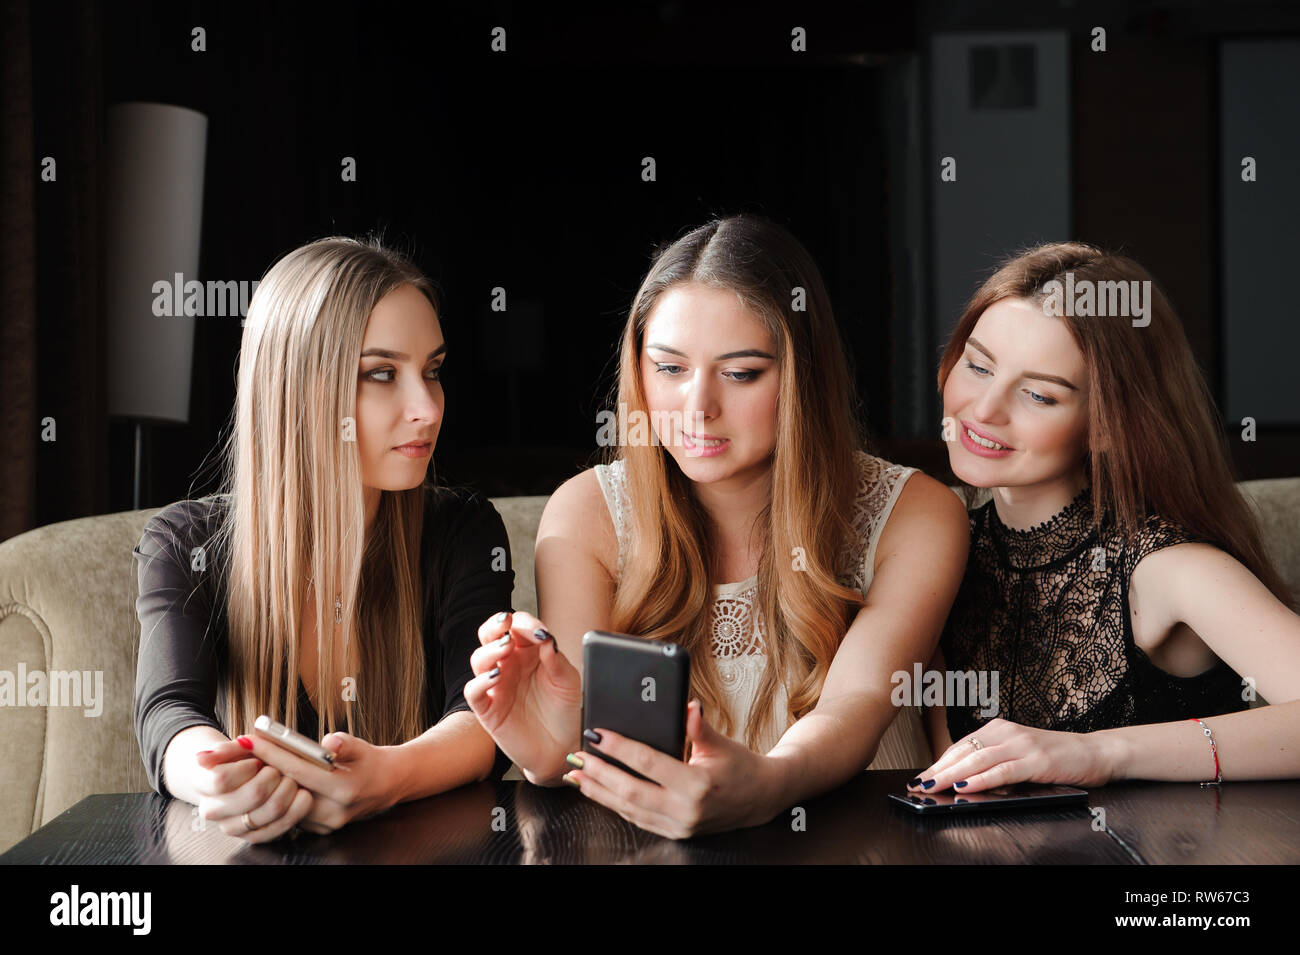 always connected, internet addiction, young girls in cafe looking at their smartphones, social network concept - Stock Image